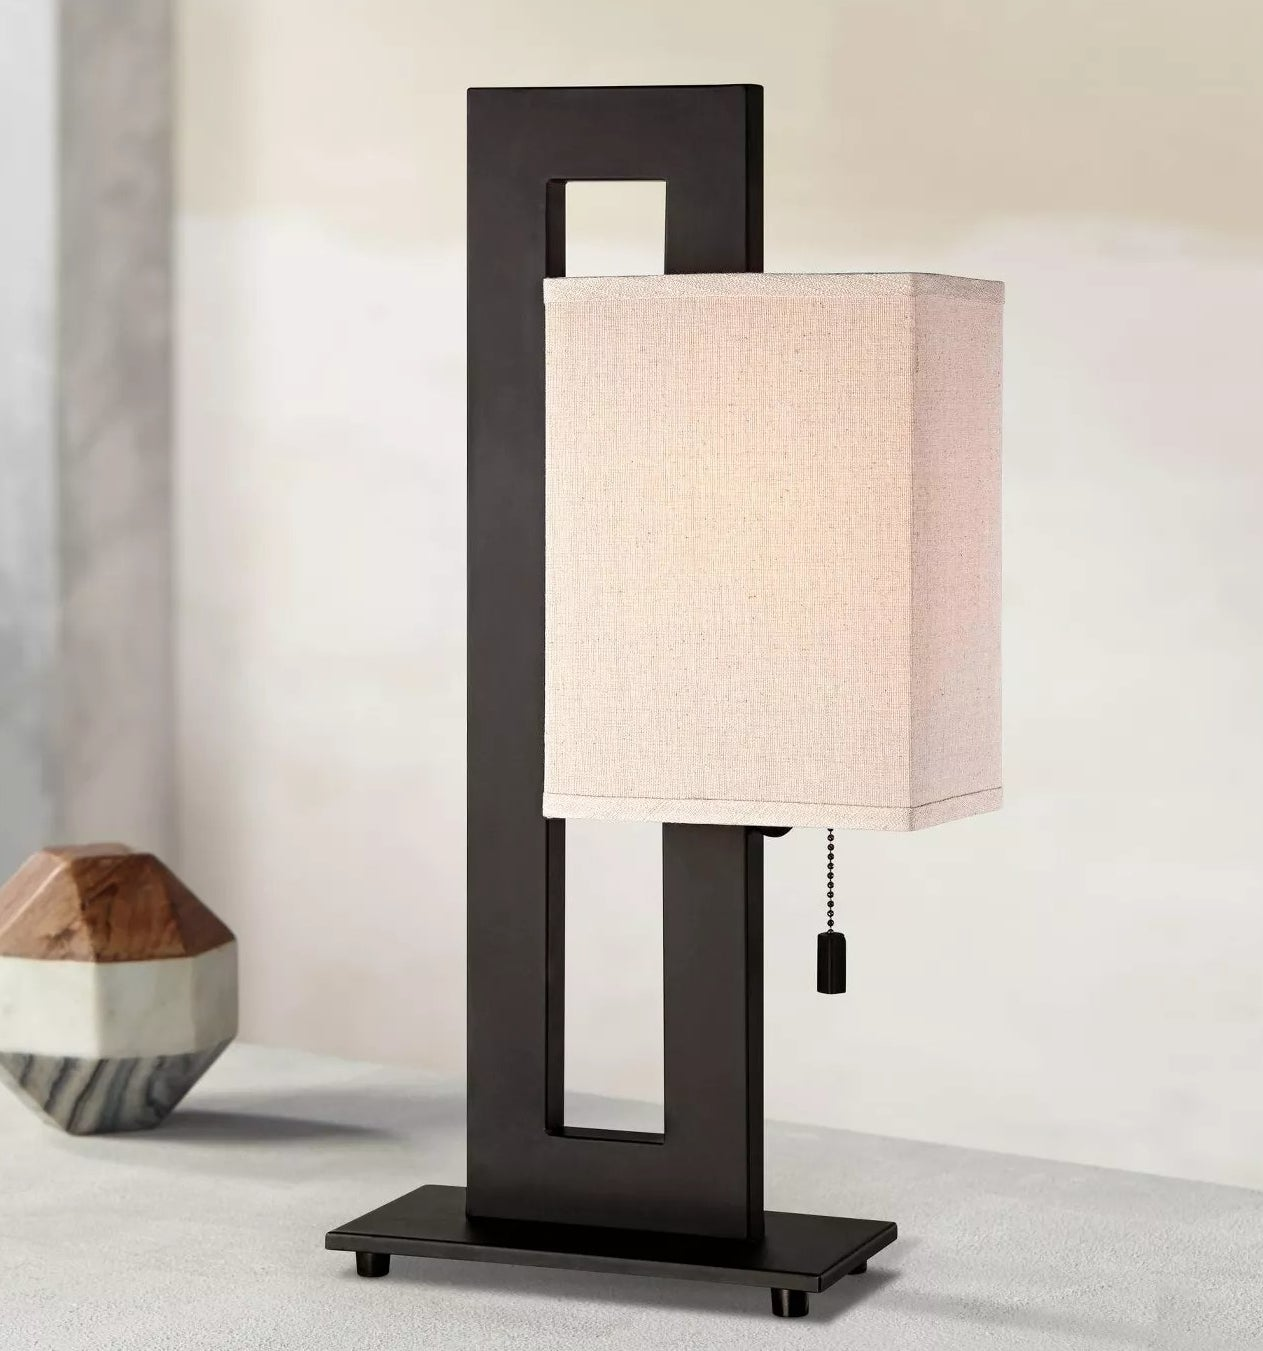 The black, asymmetrical table lamp with a beige shade